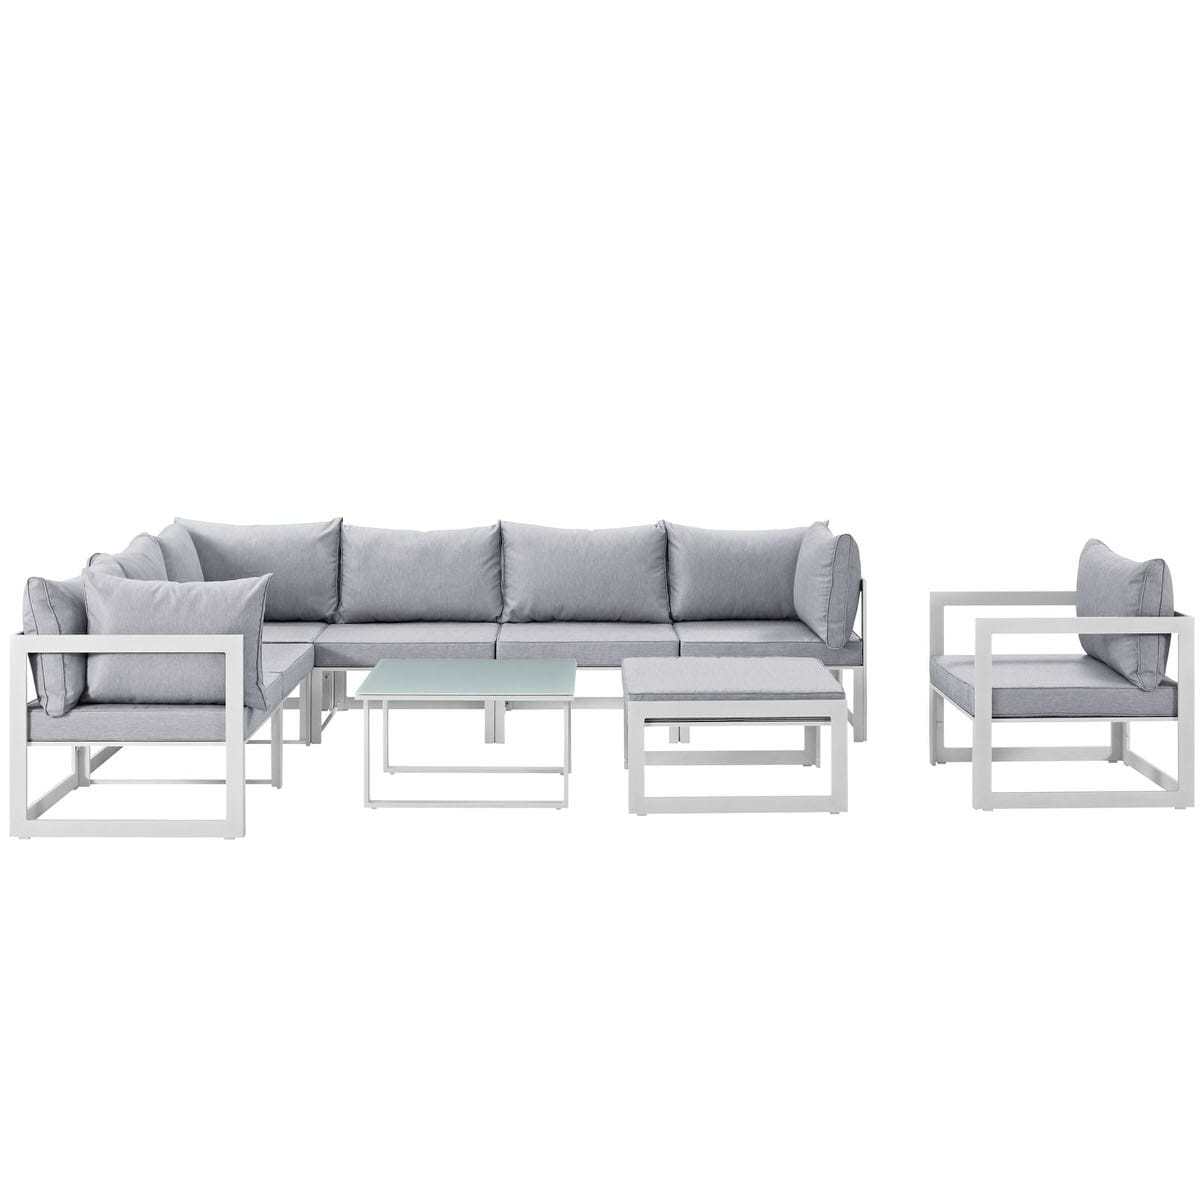 Fortuna 9 Piece Outdoor Patio Sectional Sofa Set White Gray By Modern Living